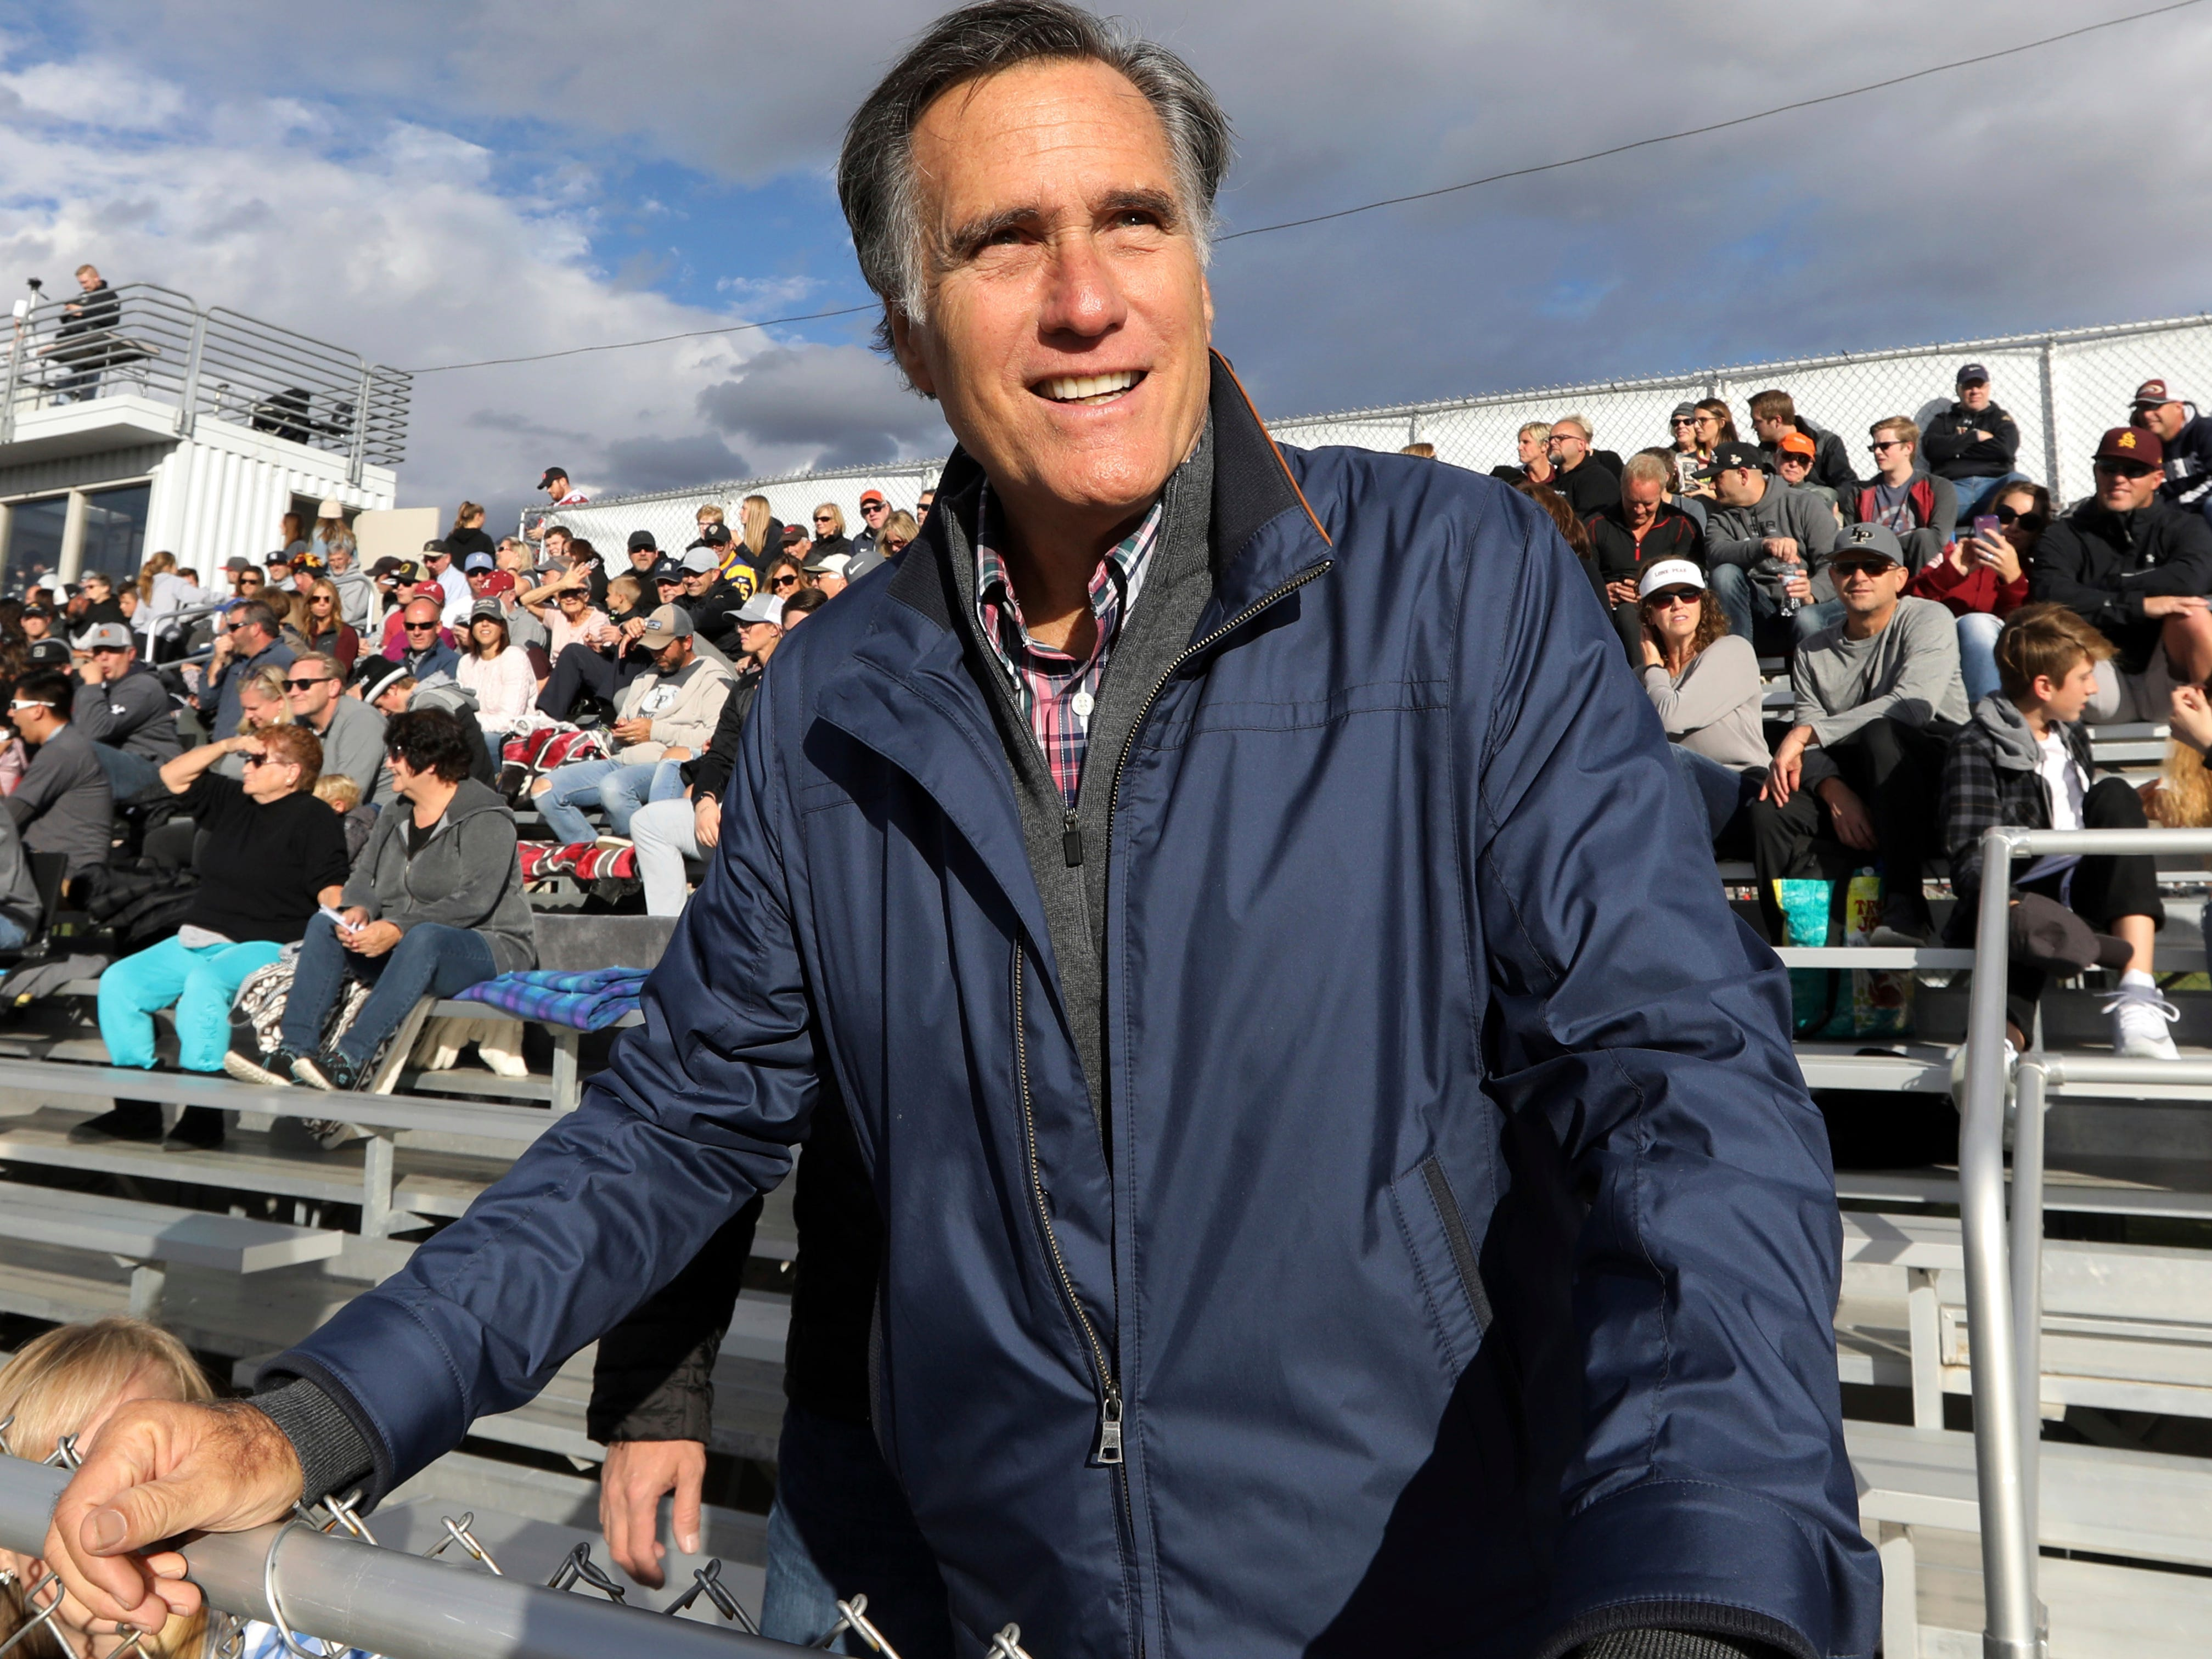 Mitt Romney on President Donald Trump: He hasn't 'risen to the mantle of the office'